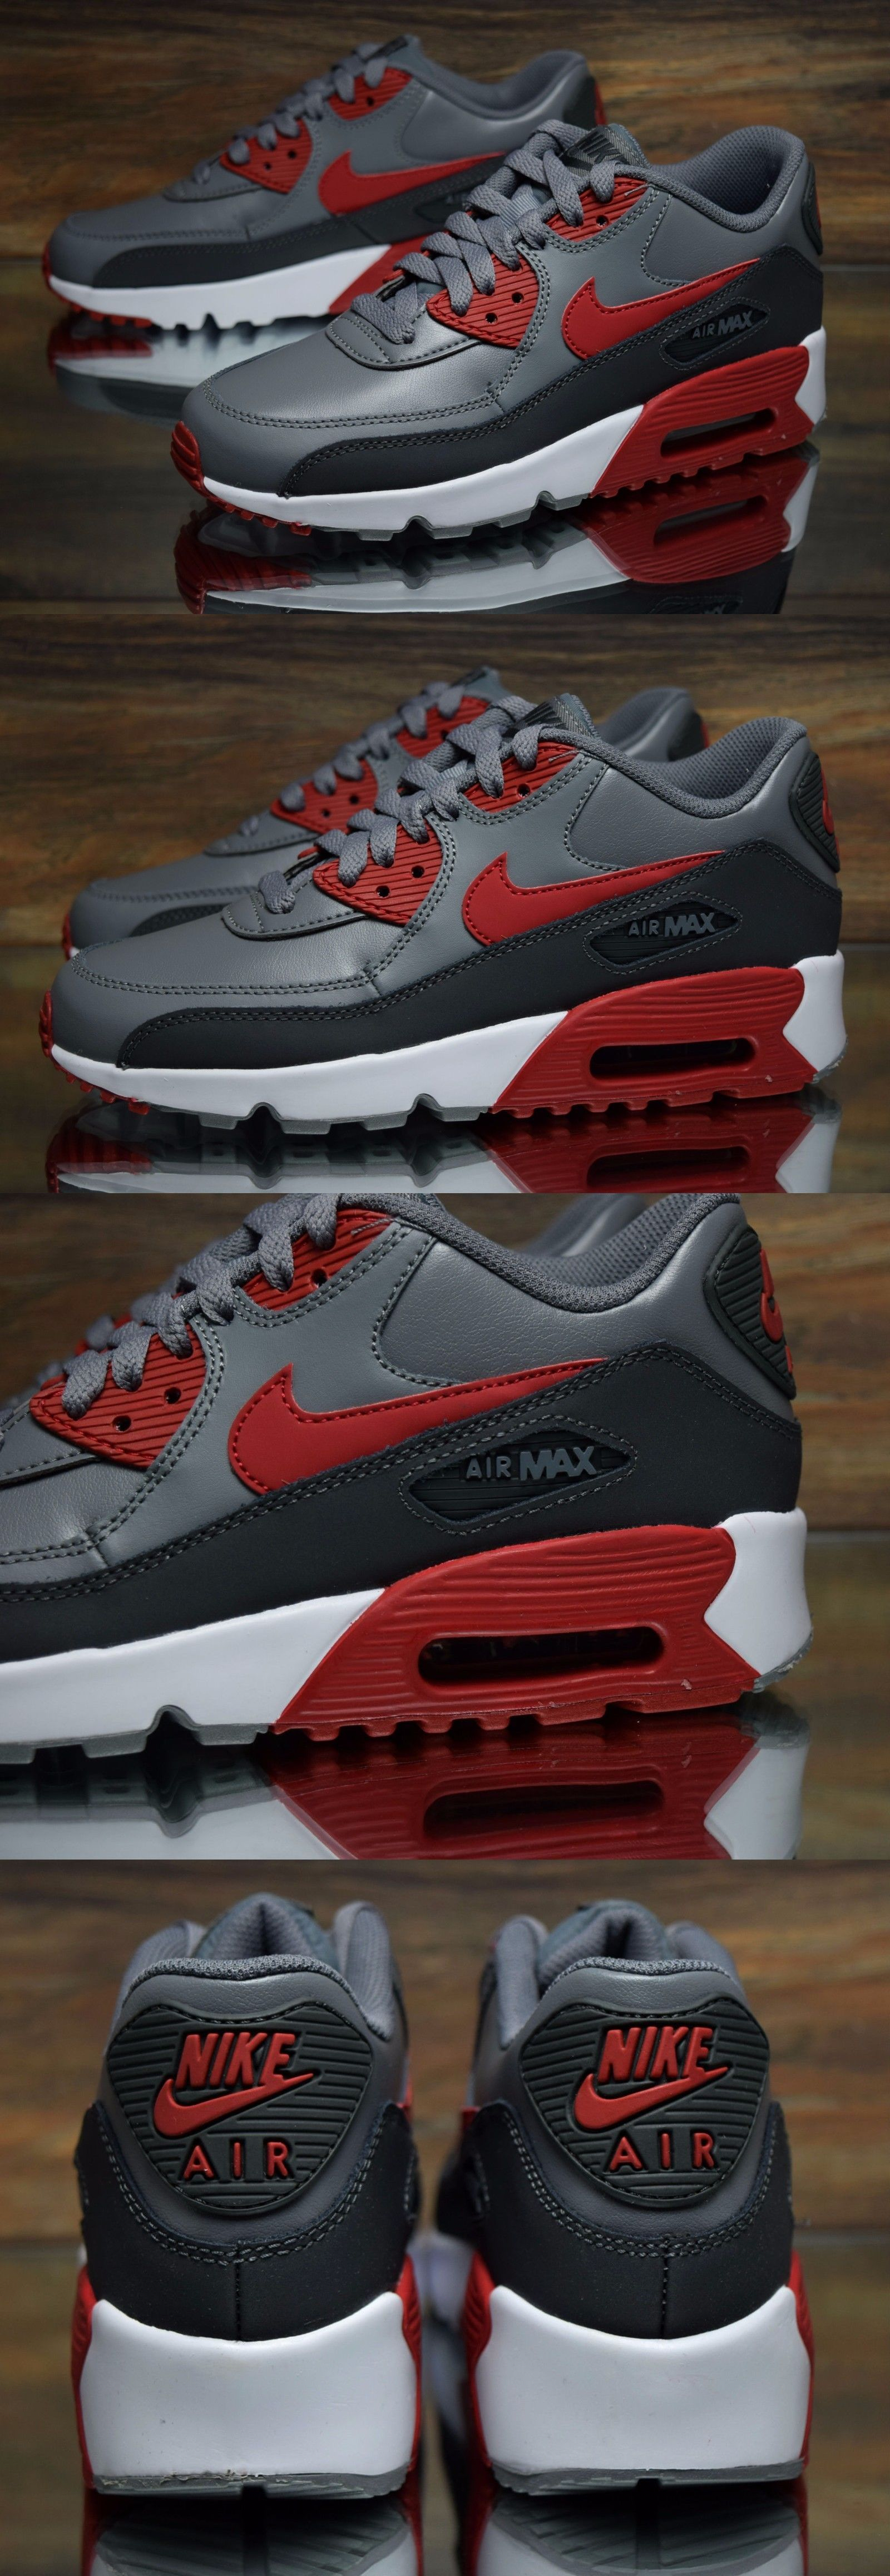 Boys Shoes 57929: Nike Air Max 90 Ltr (Gs) Grey Red 833412-